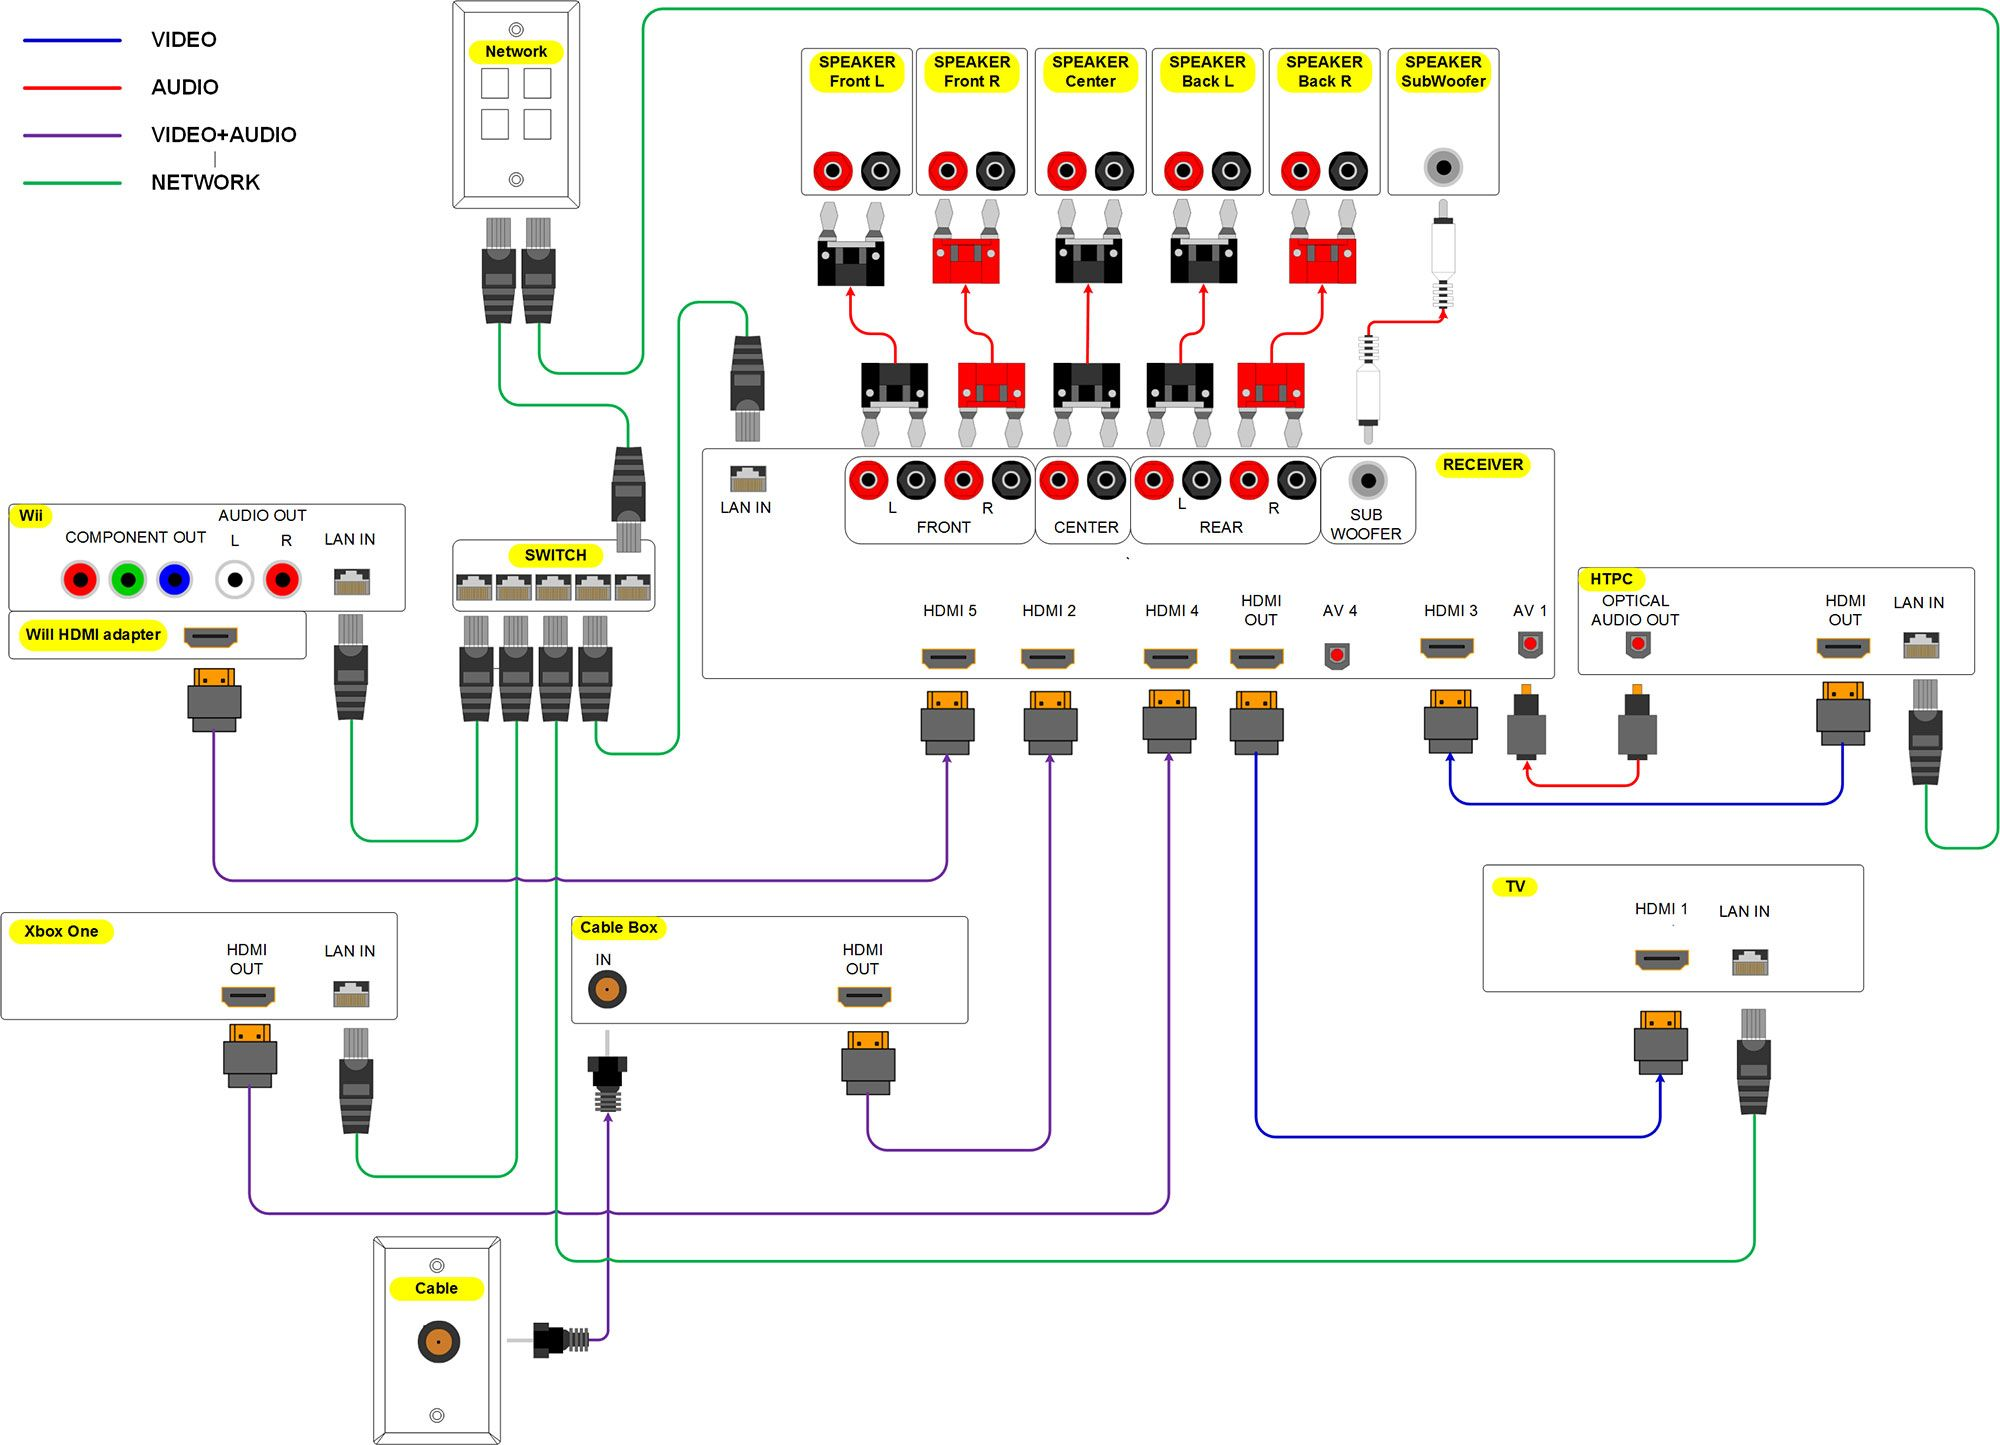 small resolution of home theater wiring diagram click it to see the big 2000 pixel wide home audio wiring supplies home audio wiring